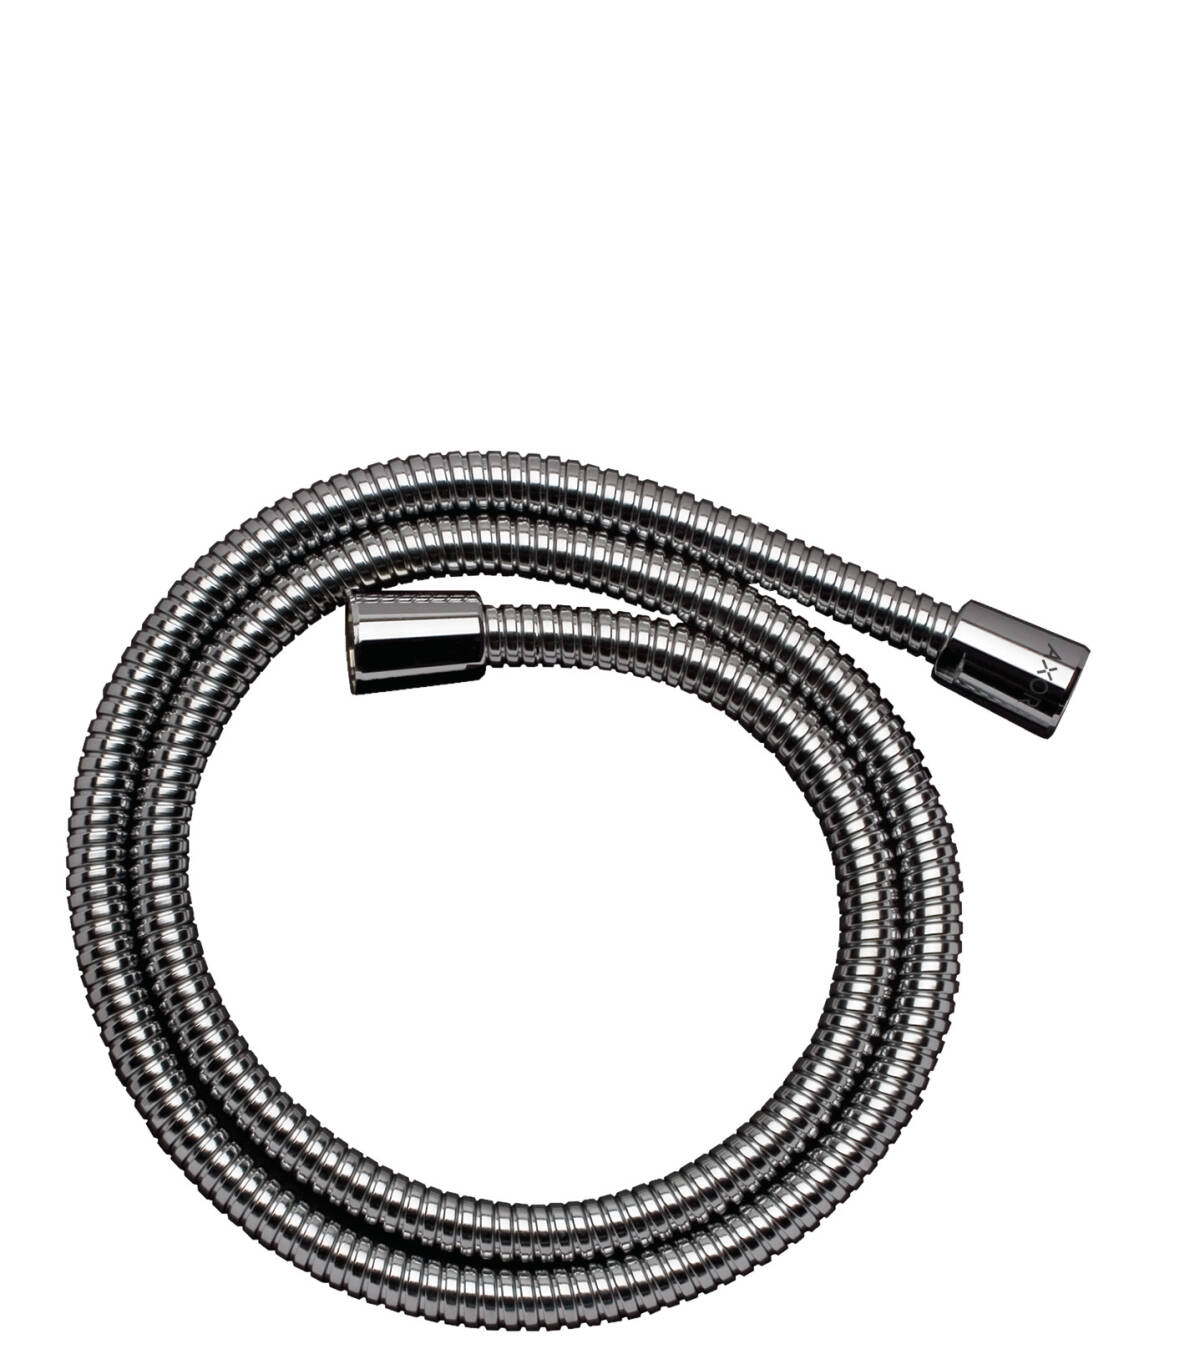 Metal shower hose 1.25 m, Brushed Bronze, 28112140